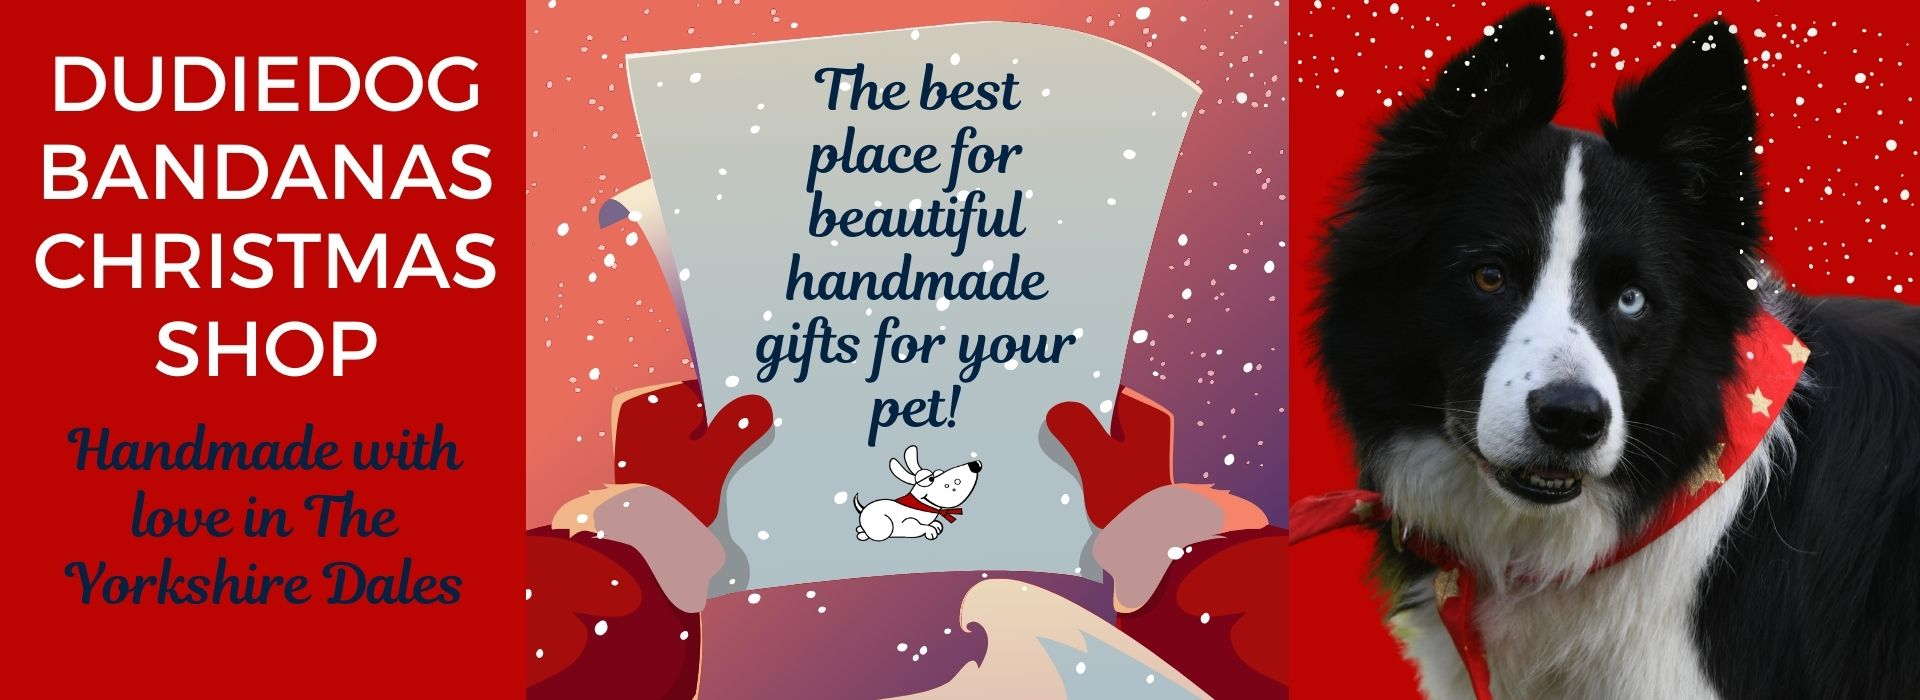 The best christmas gifts for dogs UK at Dudiedog Bandanas Christmas dog shop